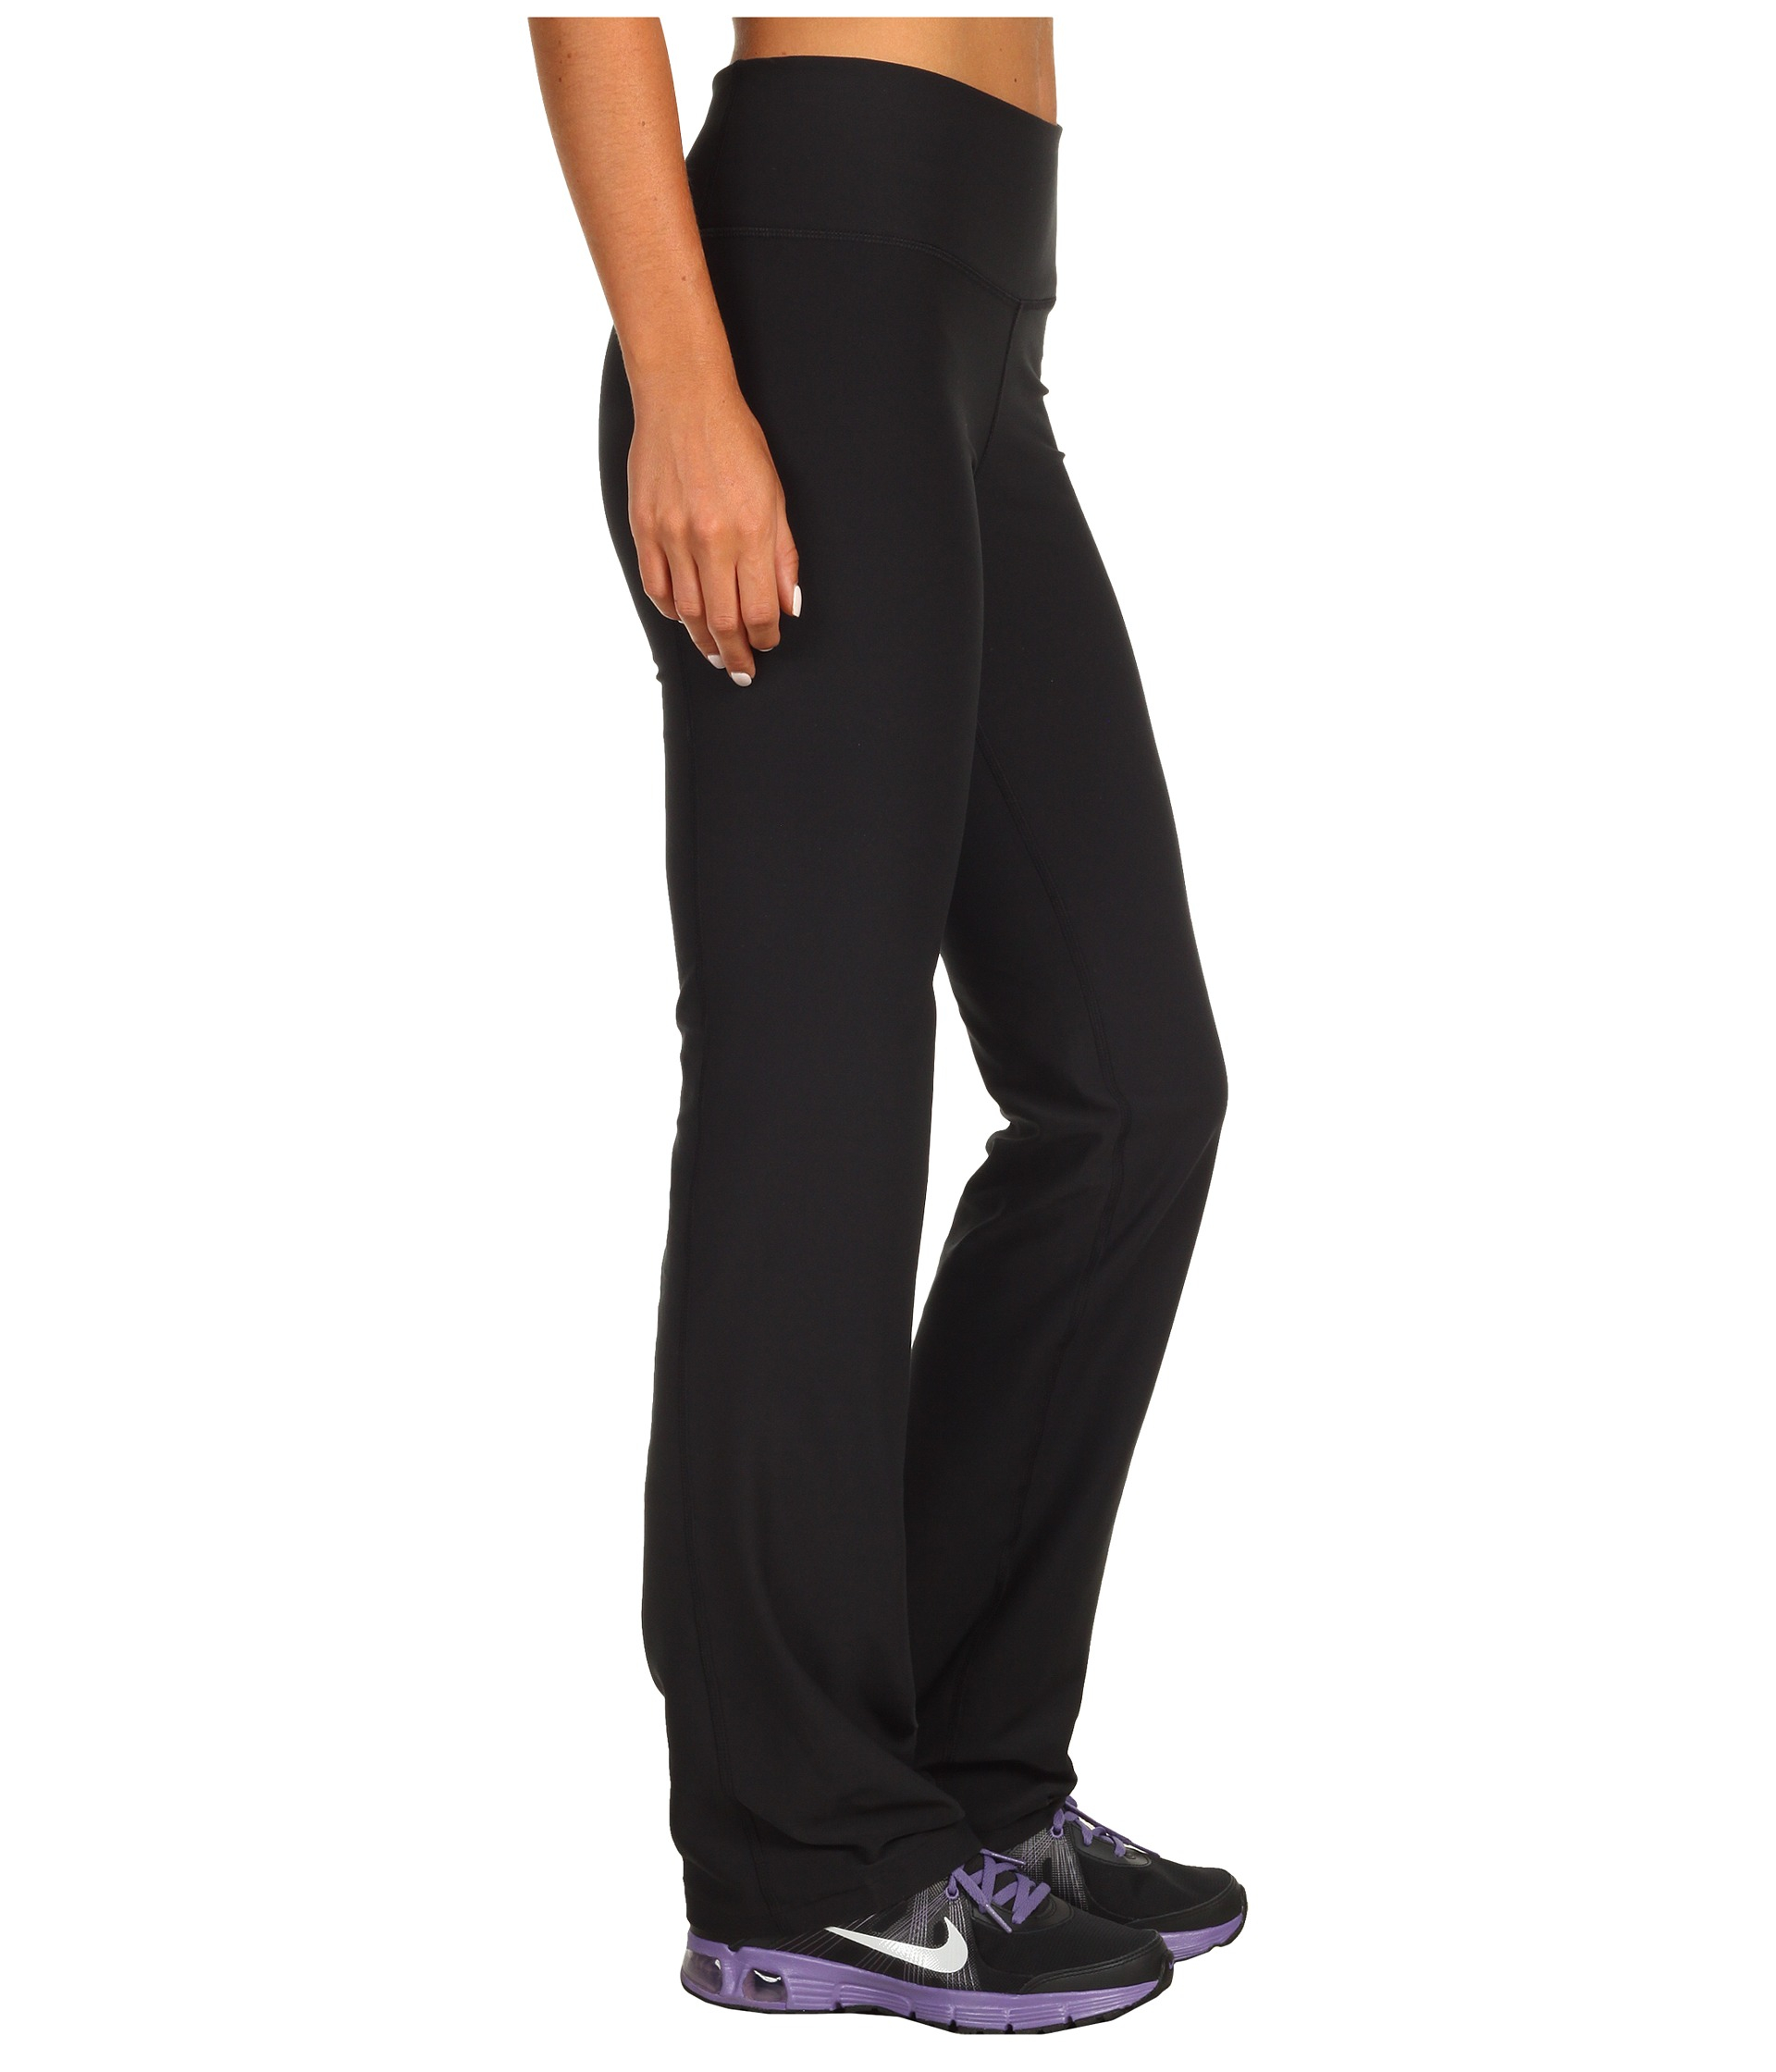 Fantastic  Search Results  Nike Legend 20 Slim DriFit Cotton Pants  Women39s